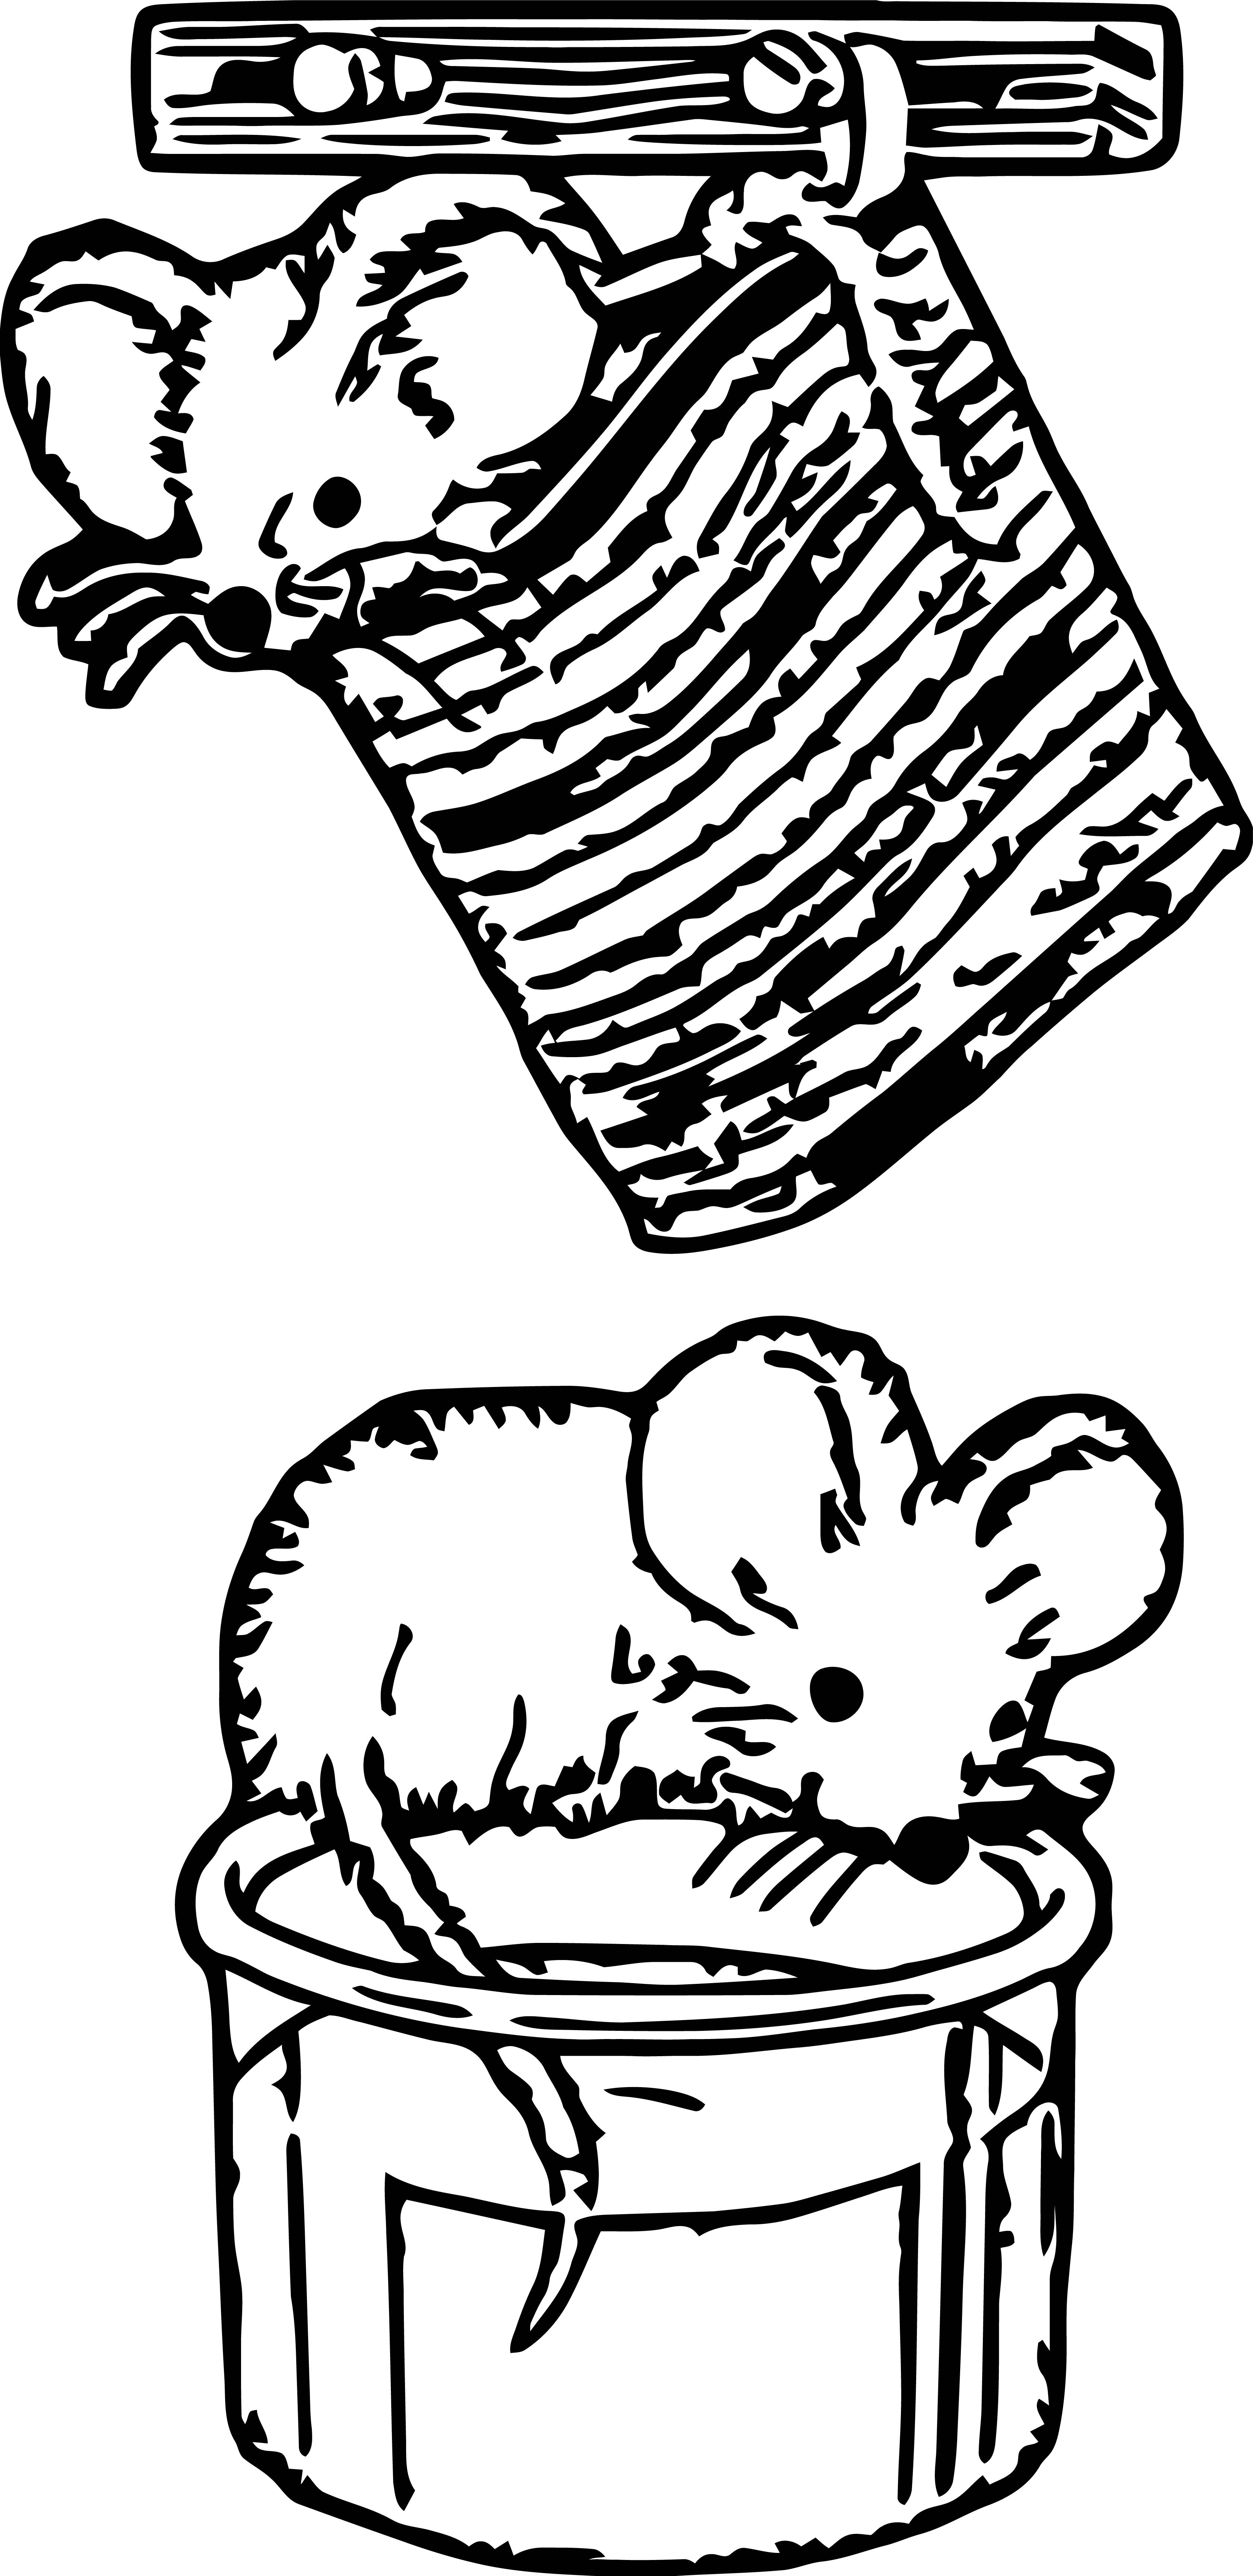 Mouse Jpeg Coloring Page 05